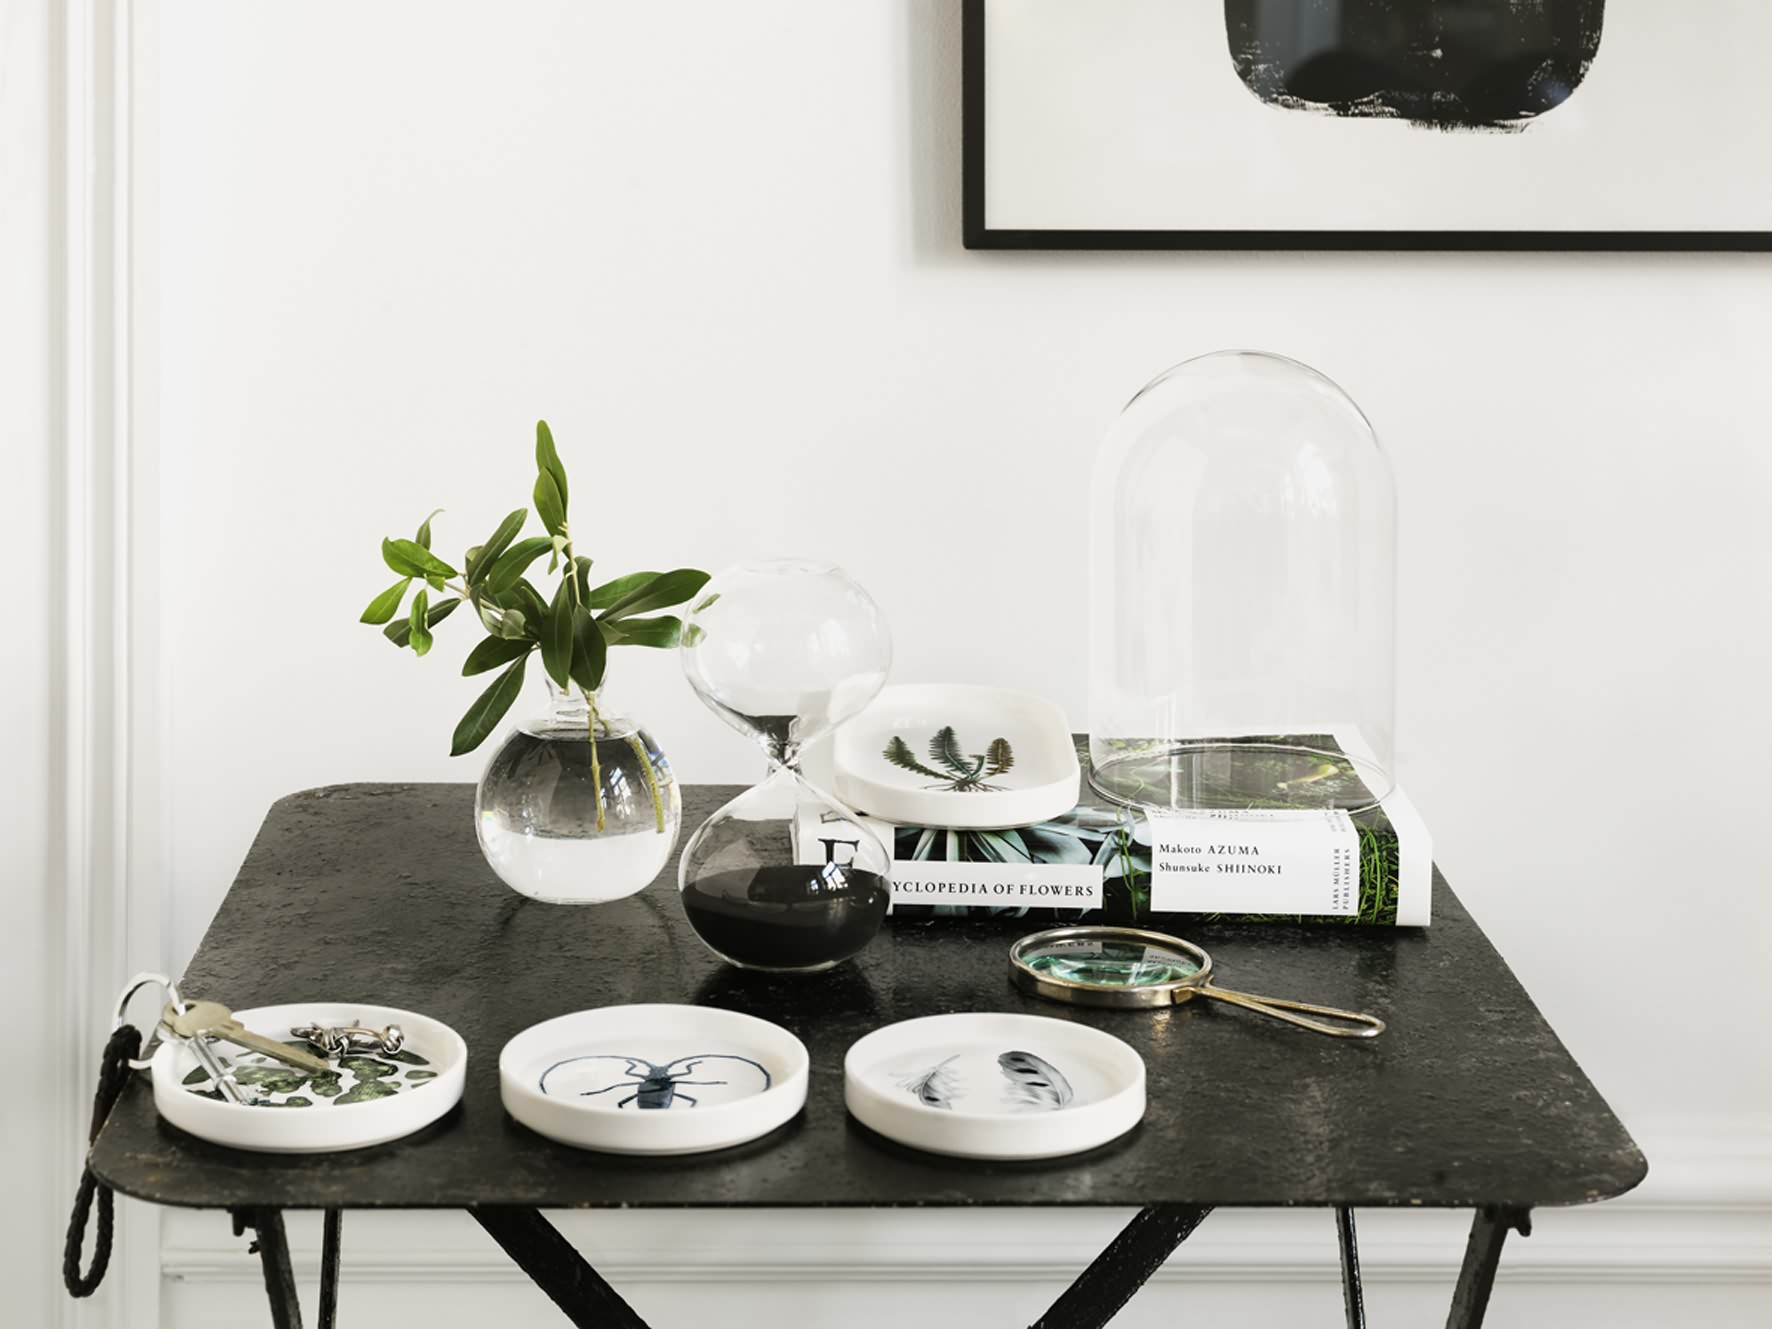 Roda_listan_table_setting